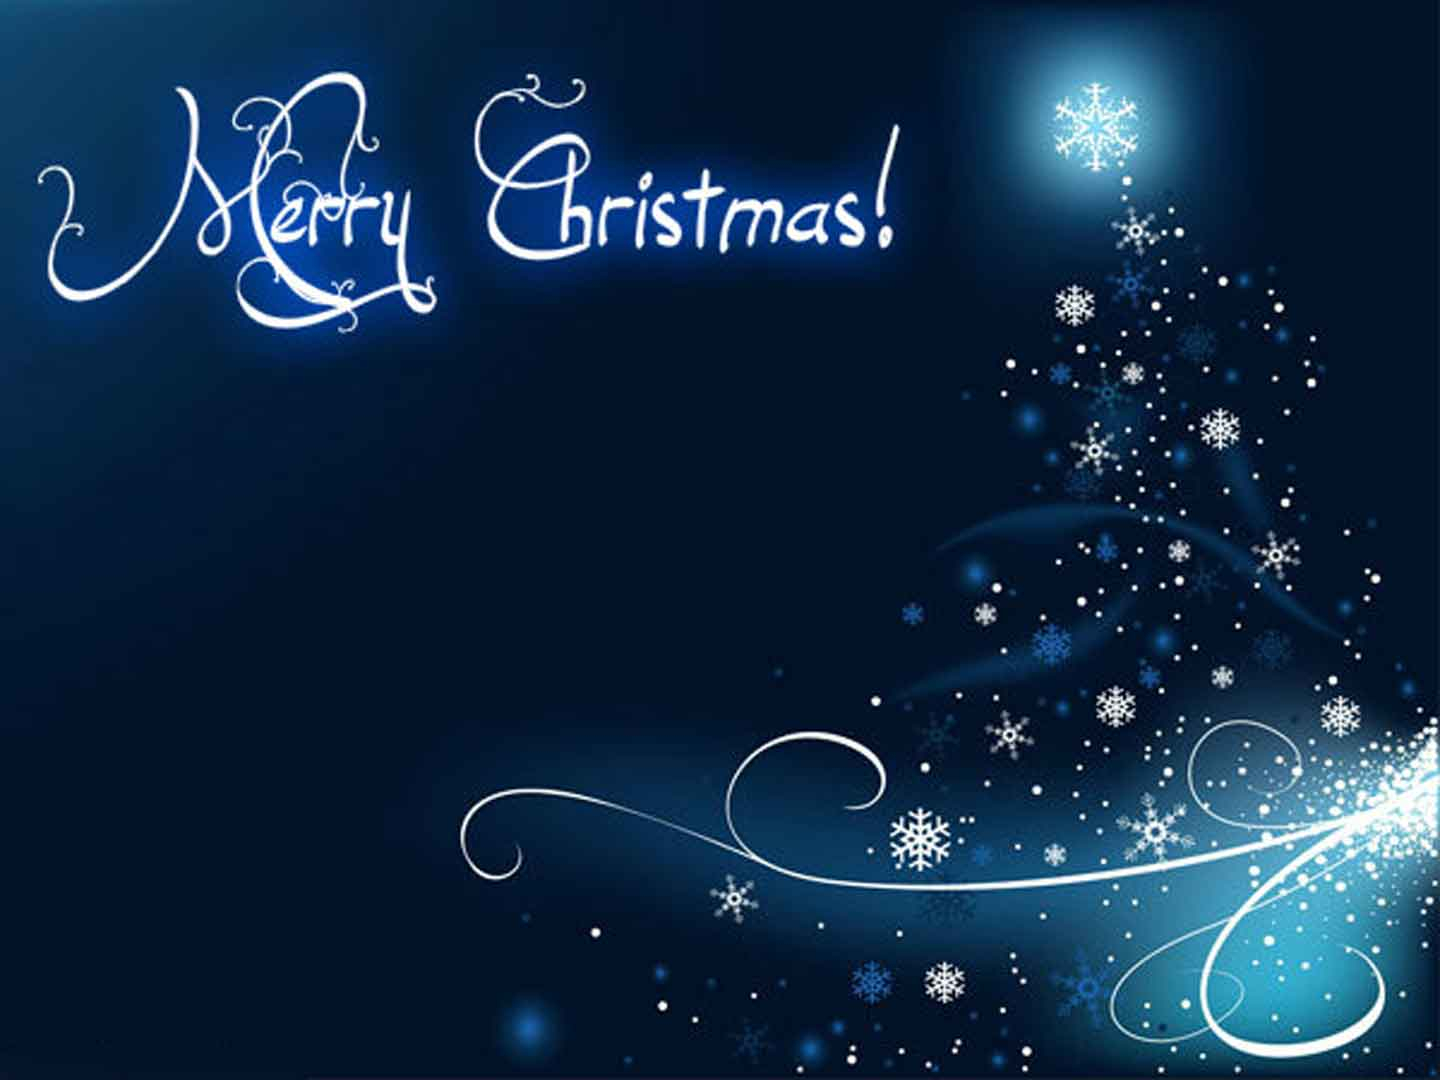 Christmas Wallpaper 3D Wallpaper Nature Wallpaper 1440x1080